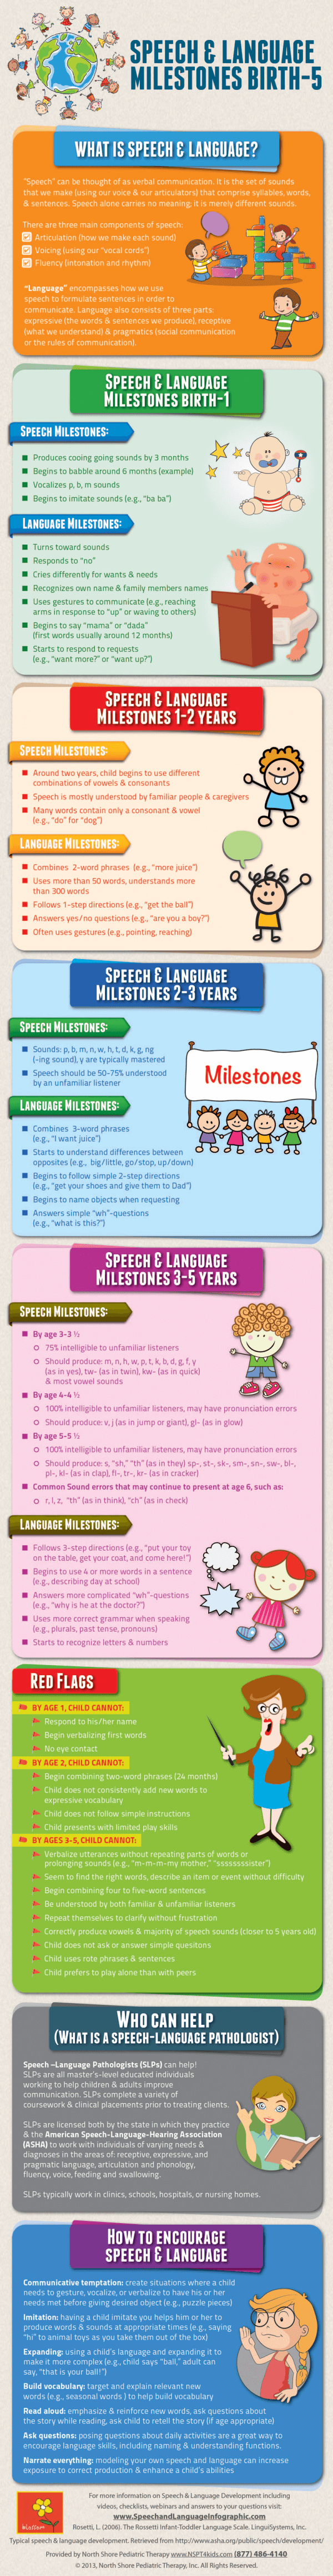 Speech-and-Language-Infographic800pixels-resized-600